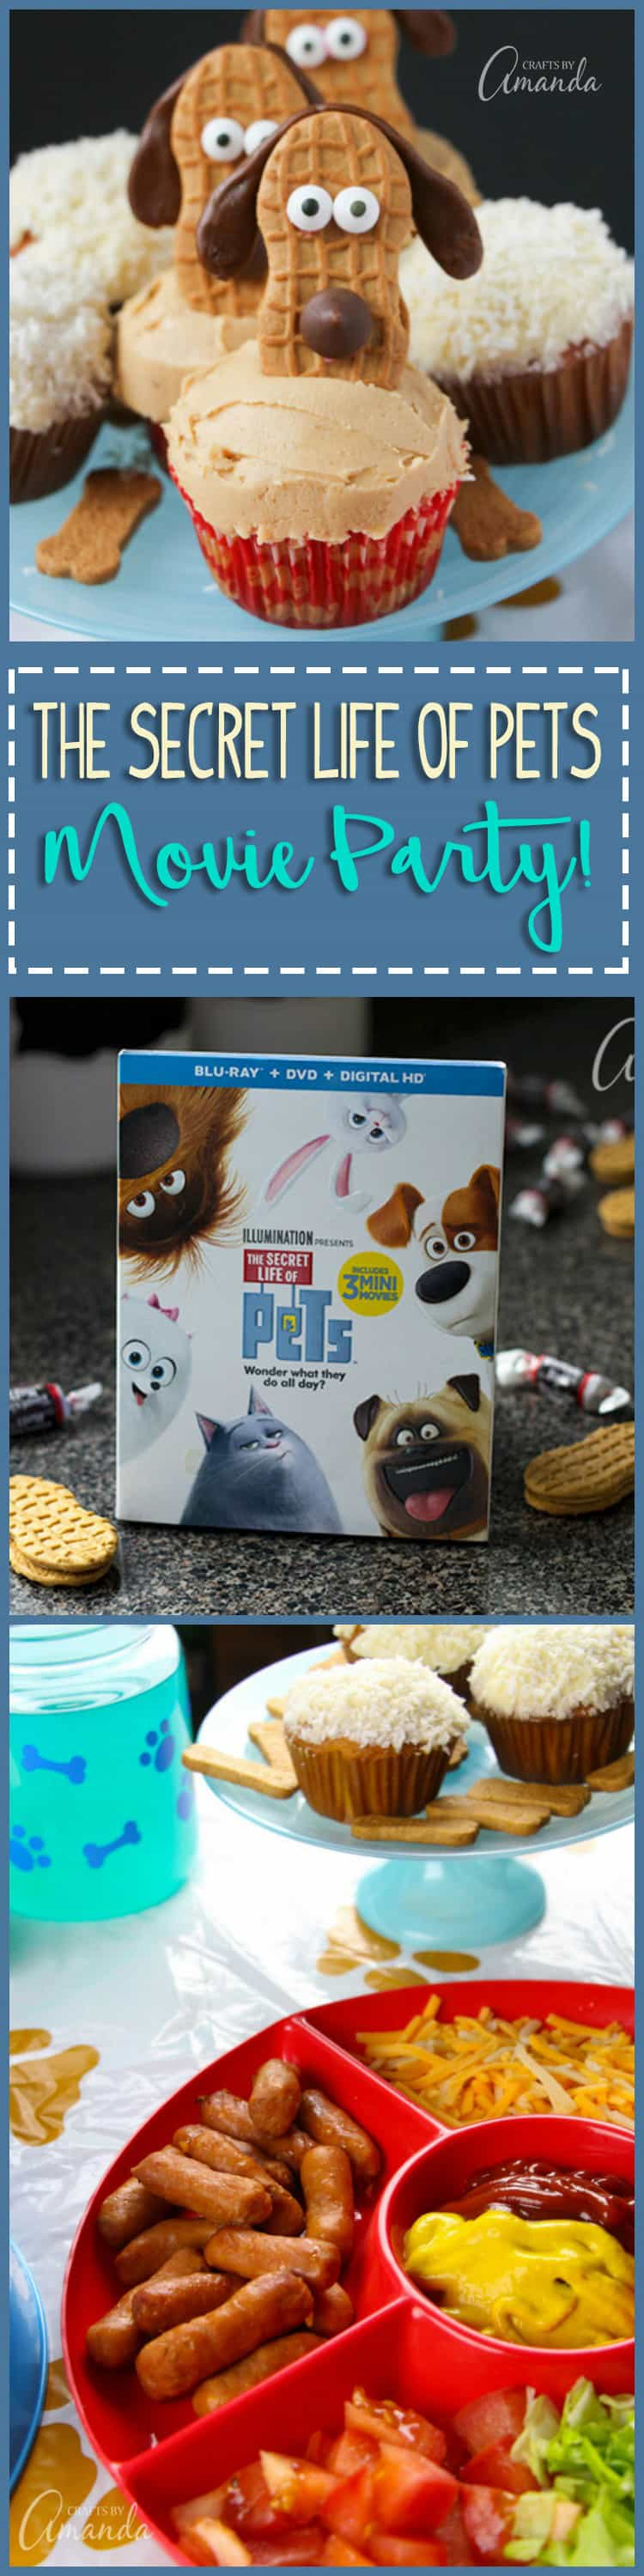 We made adorable dachshund cookie cupcakes and several other goodies for our movie night party, inspired by @PetsMovie now on DVD and Blu-ray! #TheSecretLifeOfPets #PetsPack #AD